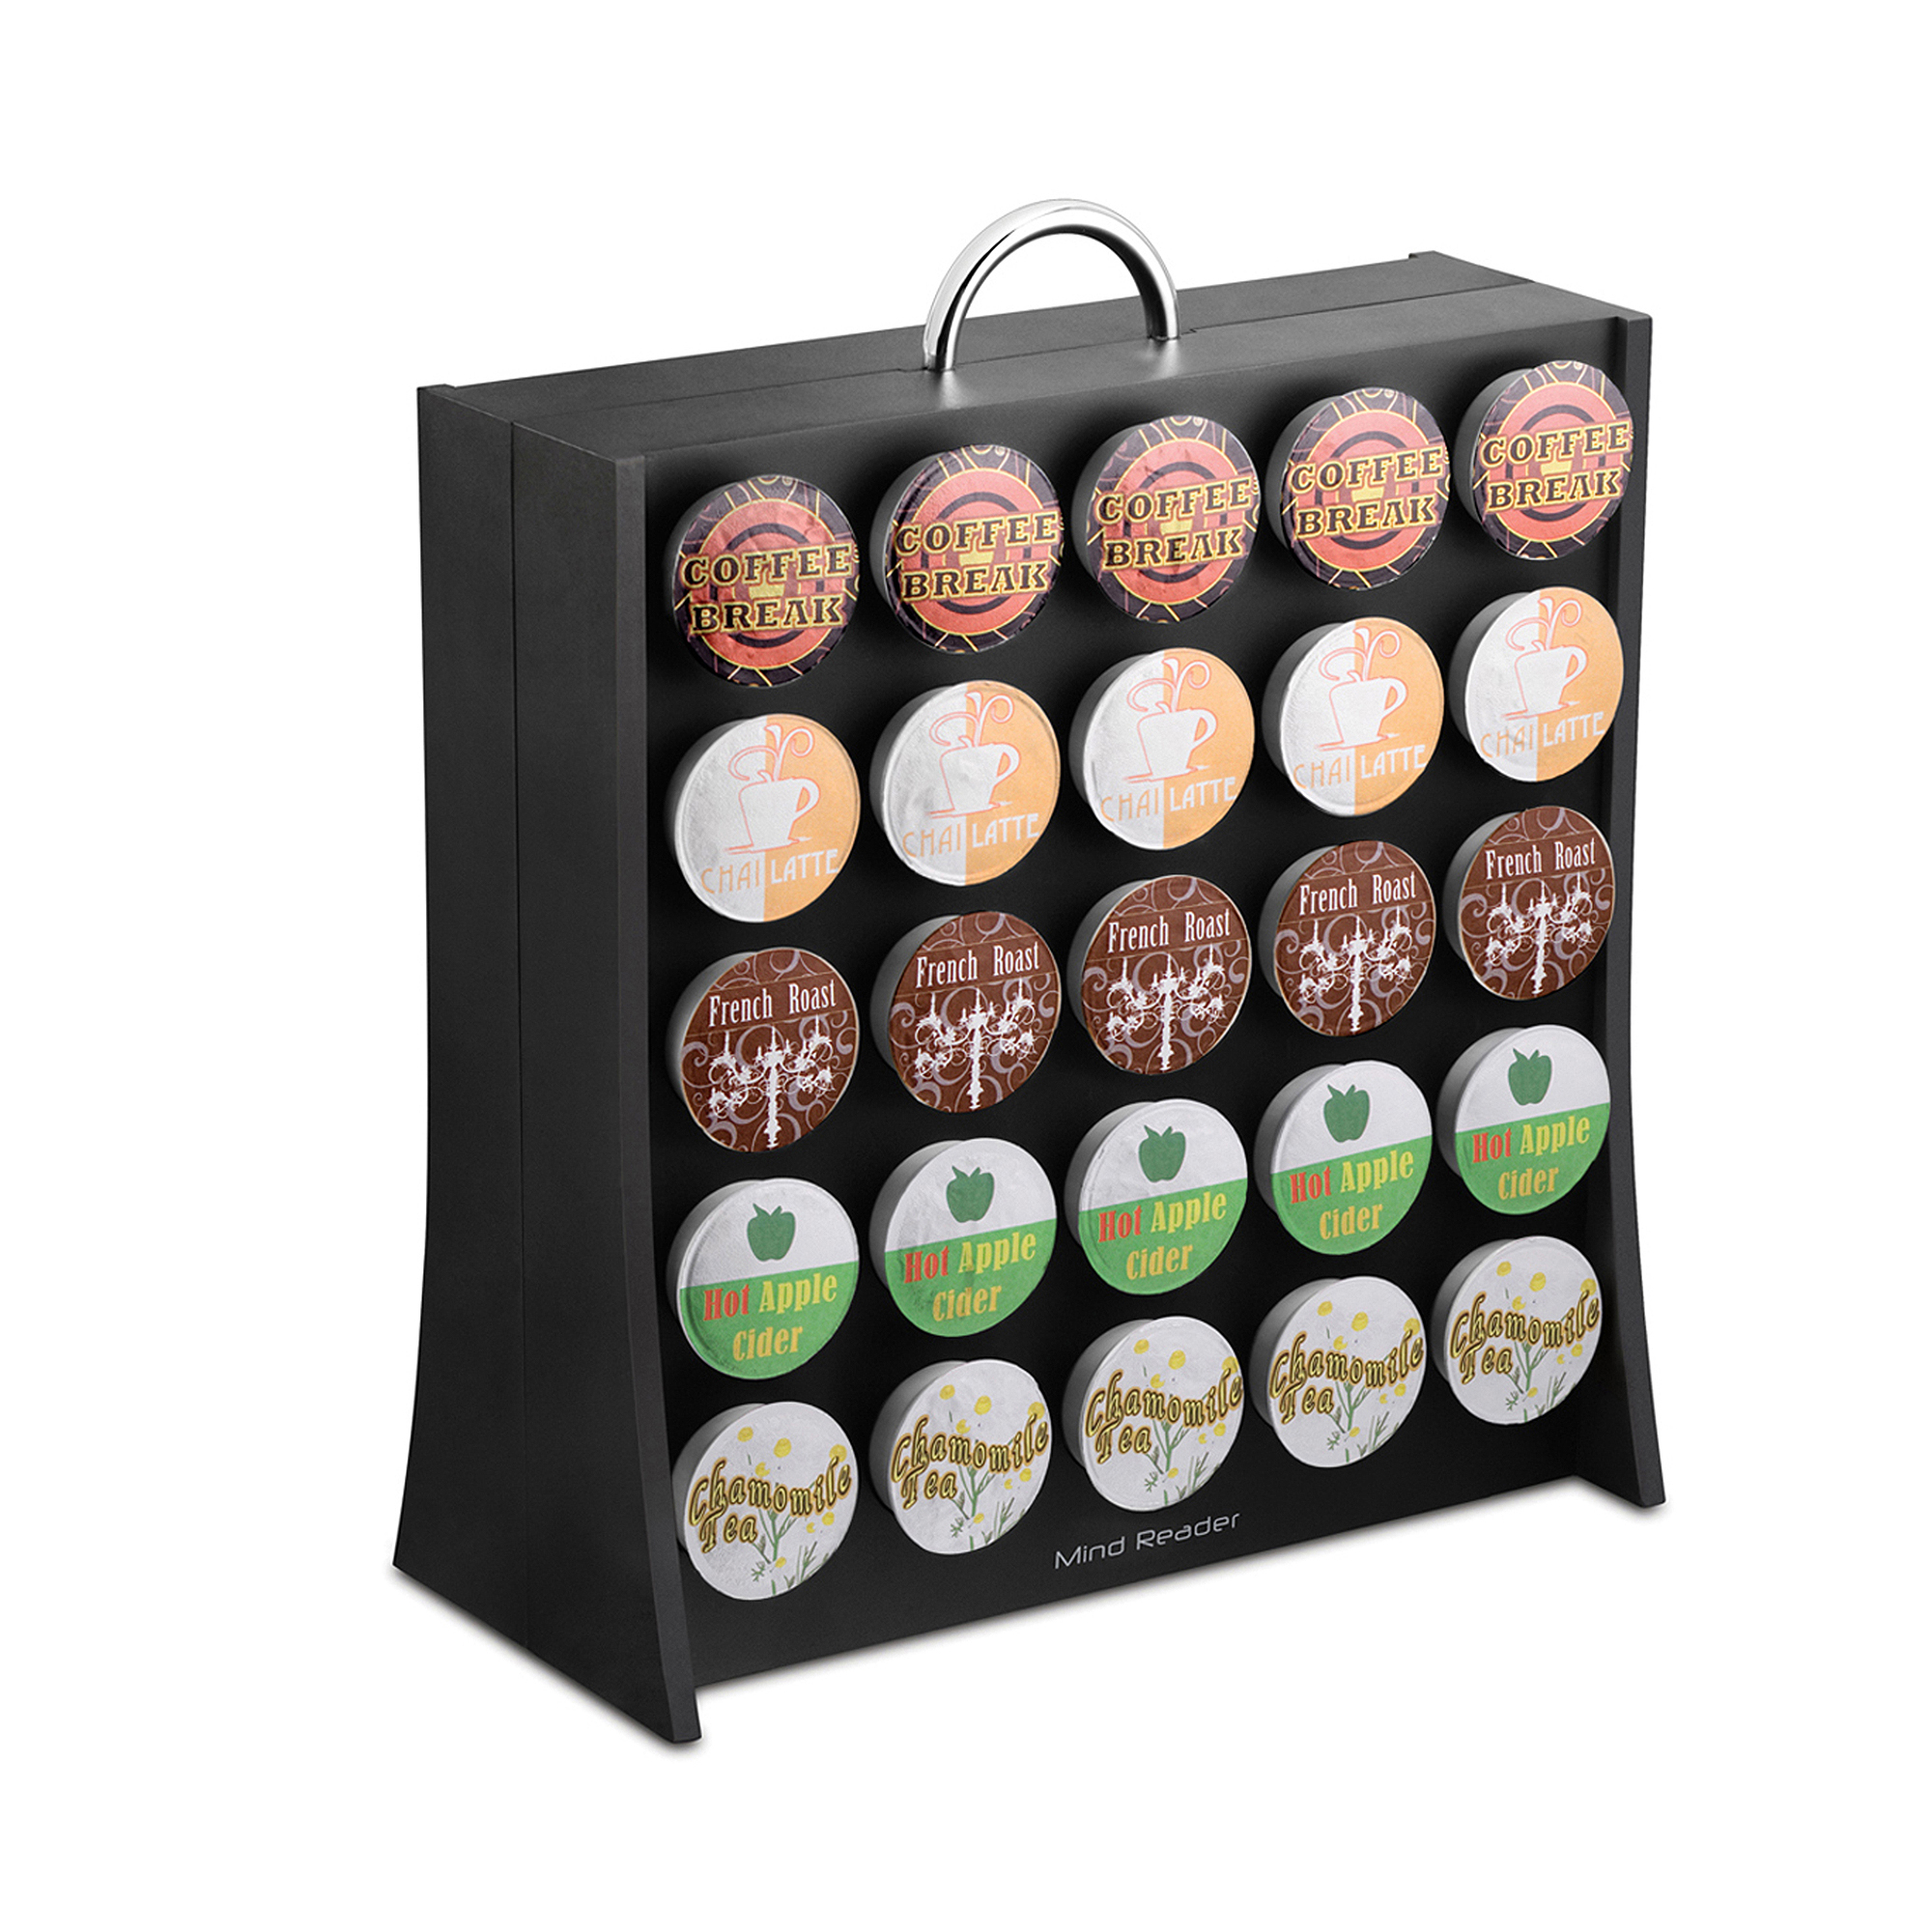 Mind Reader Coffee Pod Display Rack, 50 capacity, Black